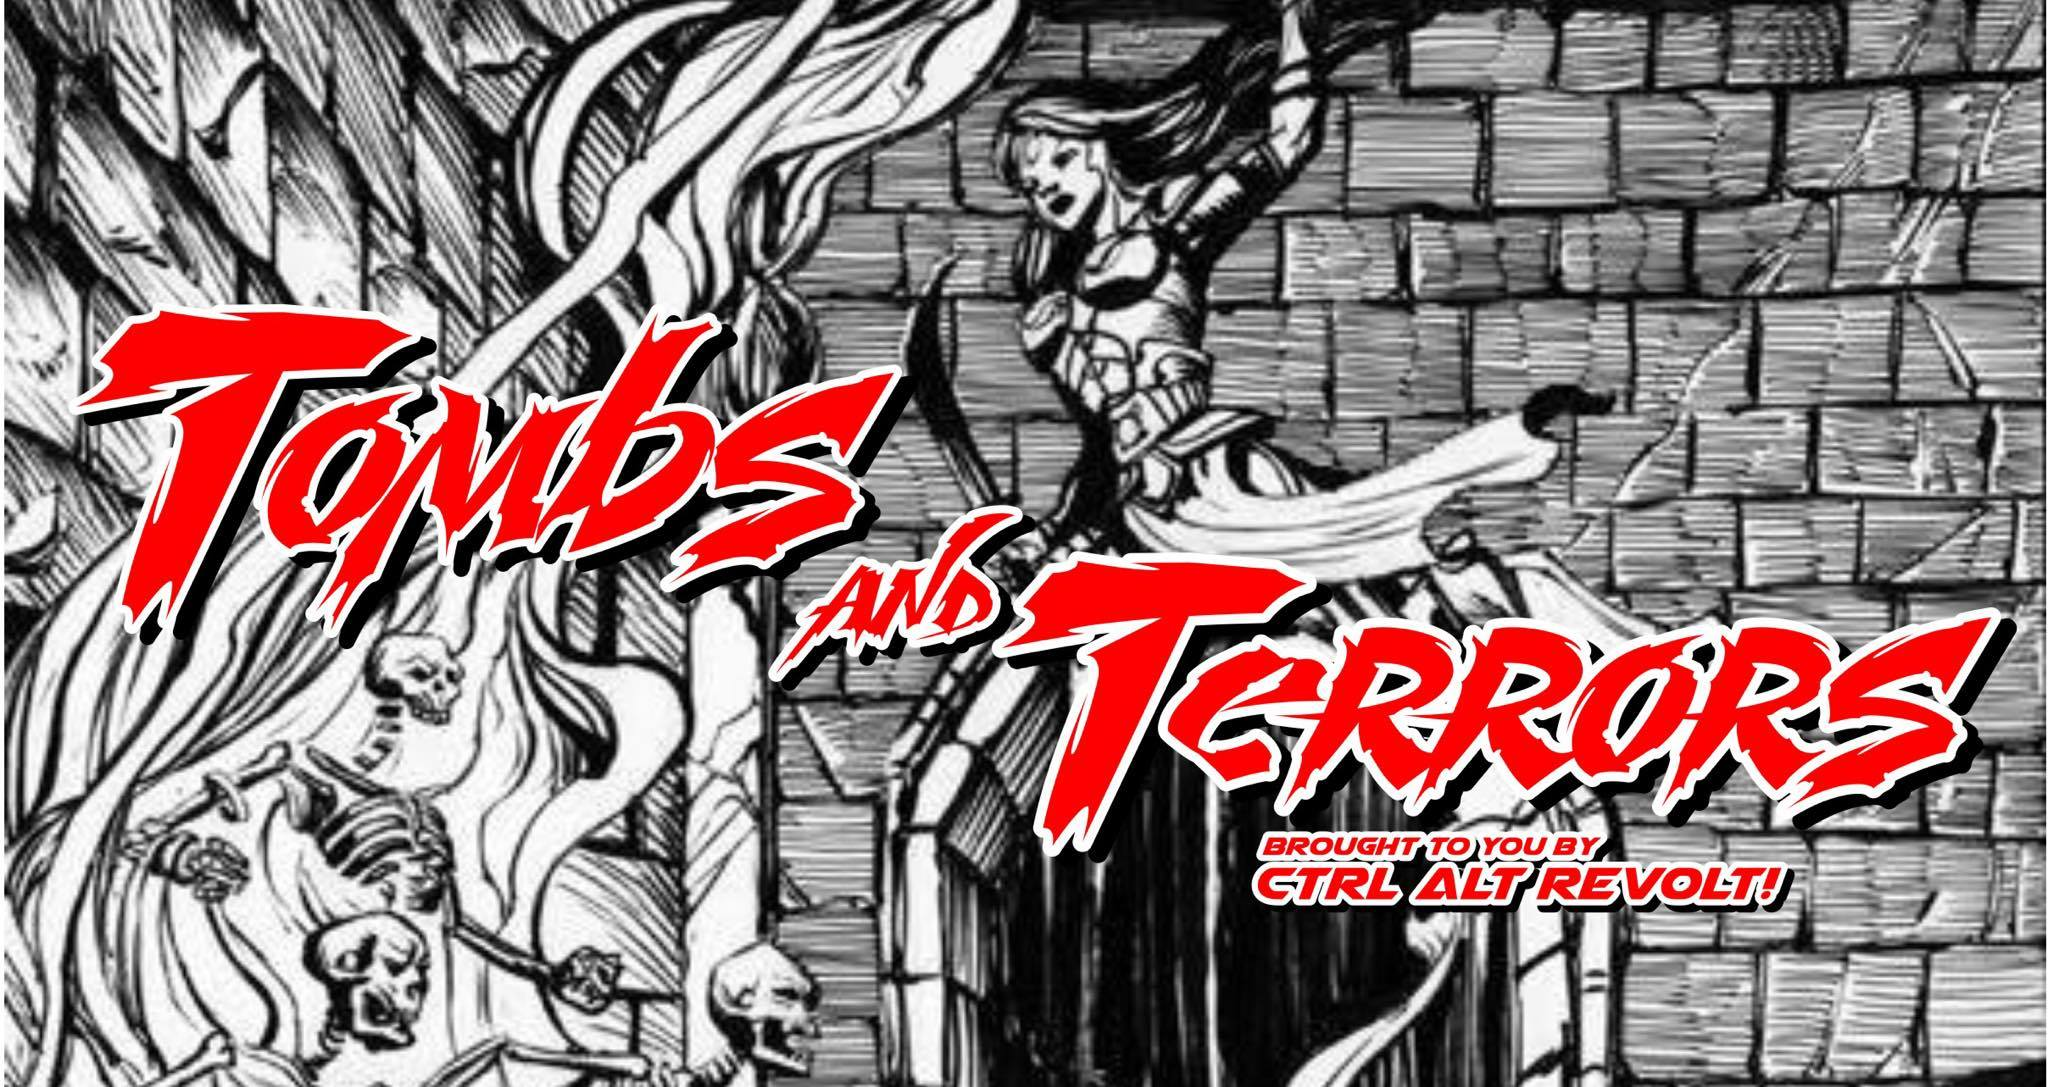 Tombs and Terrors… brought to you by CTRL ALT REVOLT!